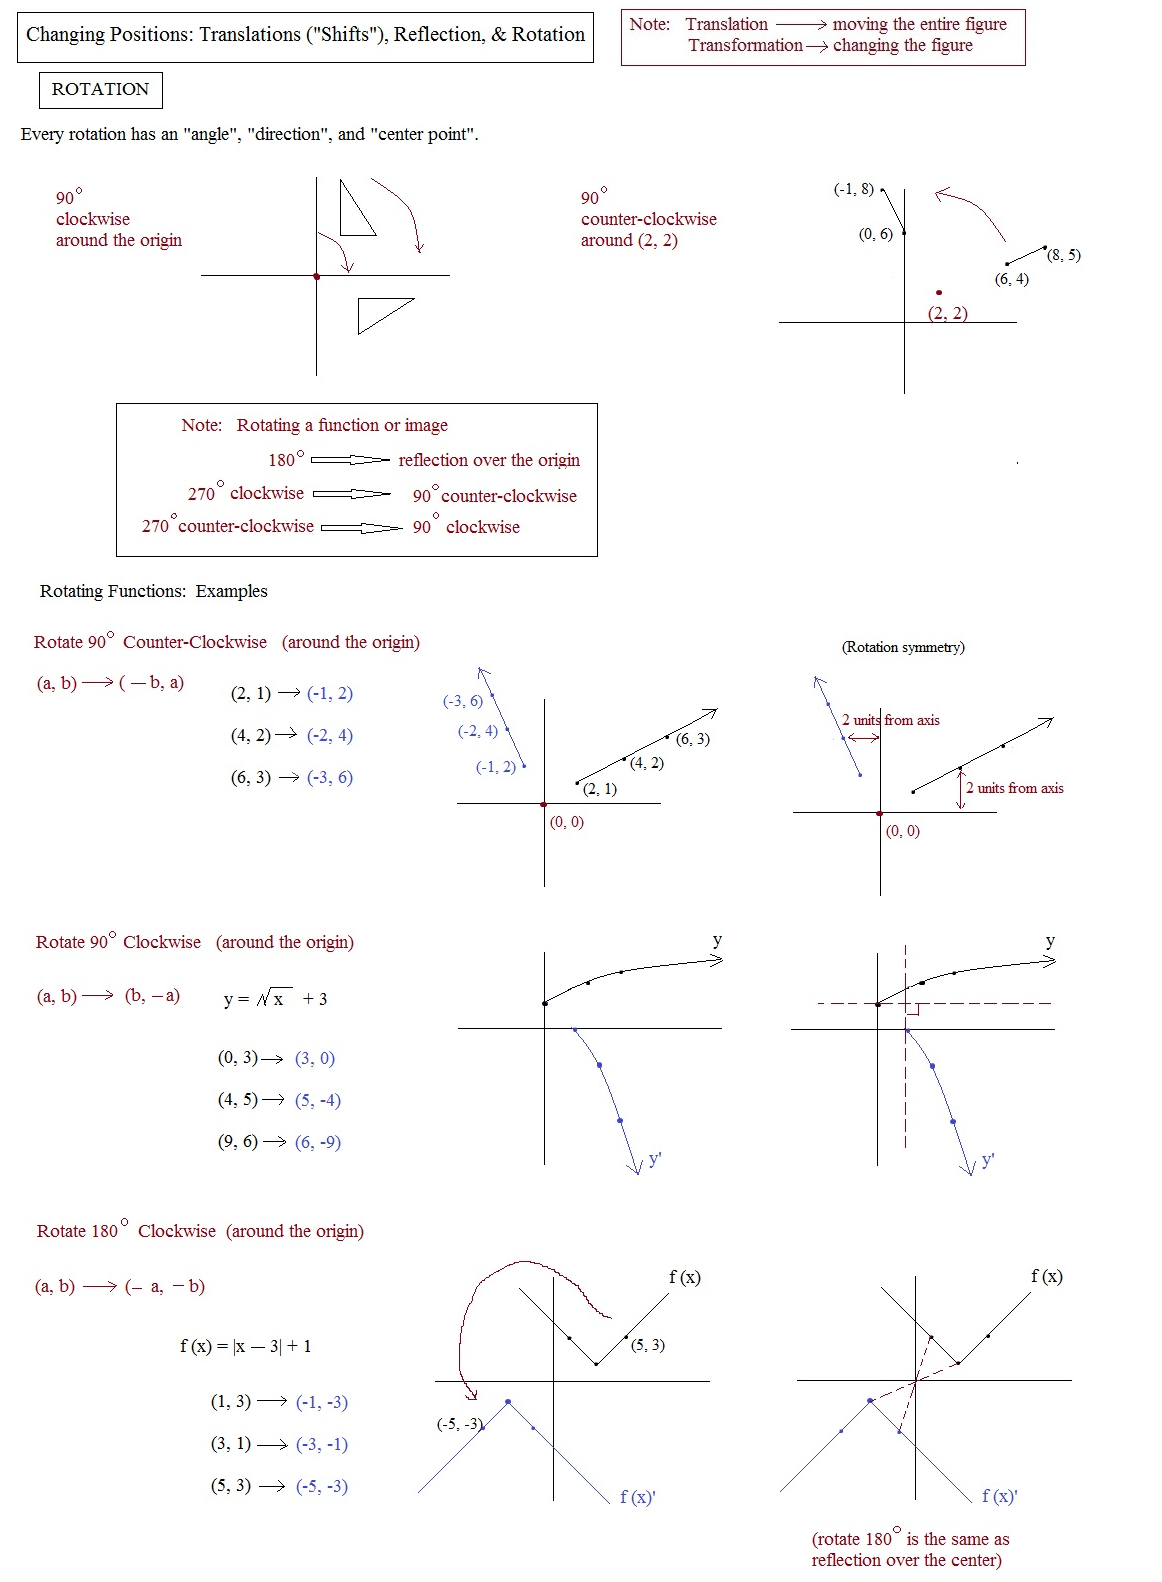 worksheet Translation Reflection Rotation Worksheet math plane graphing ii translation reflection rotation translations shifts reflections rotations 3